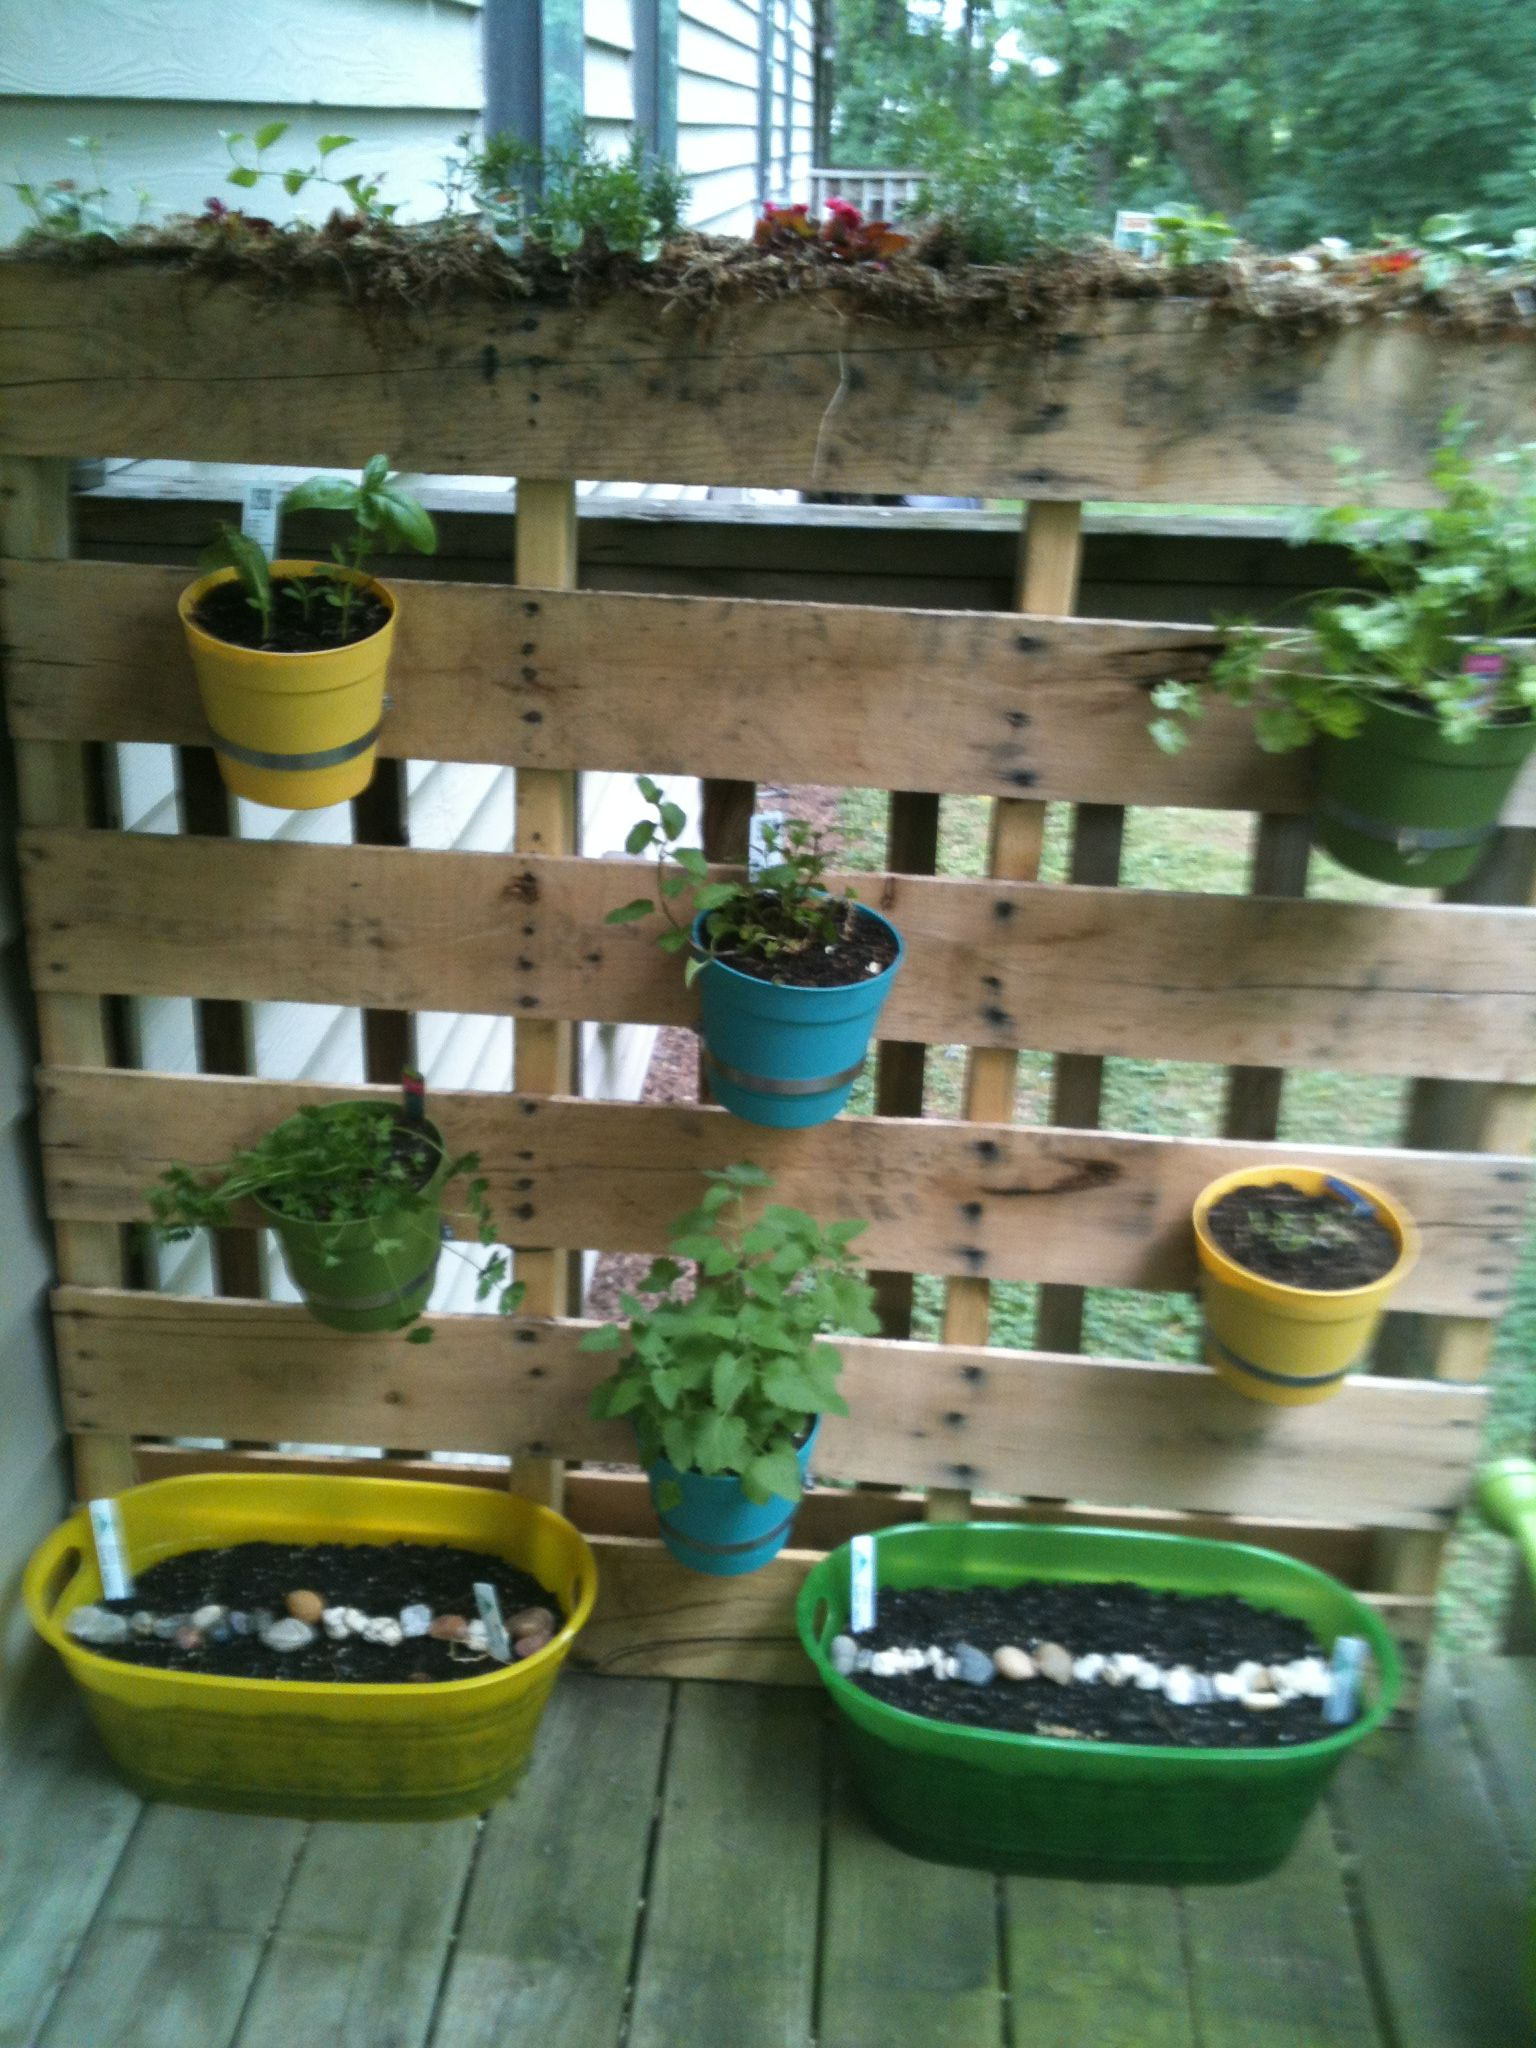 My completed version of a project I pinned...pallet herb garden. I planted the top of the pallet with annual flowers and trailing accent plants. In the tubs, I have peas. Pretty happy with the results.